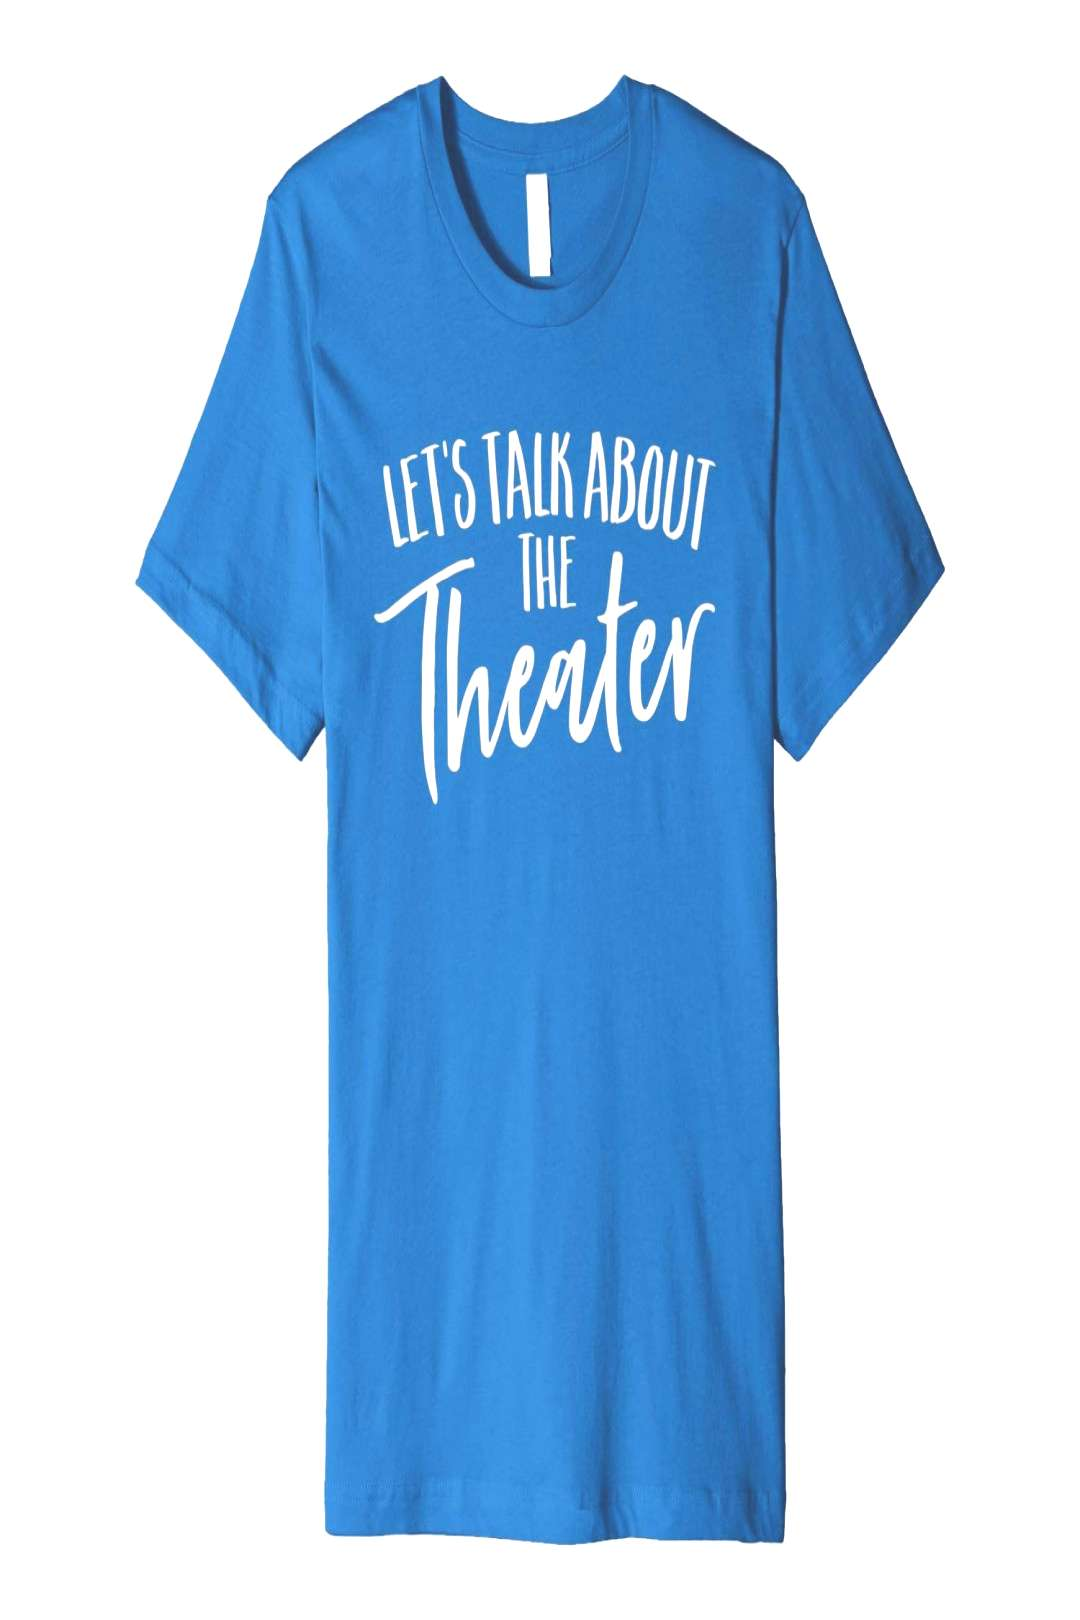 Let's Talk About The Theater Acting Actor Drama Shirt  Let's Talk About The Theater Acting Acto